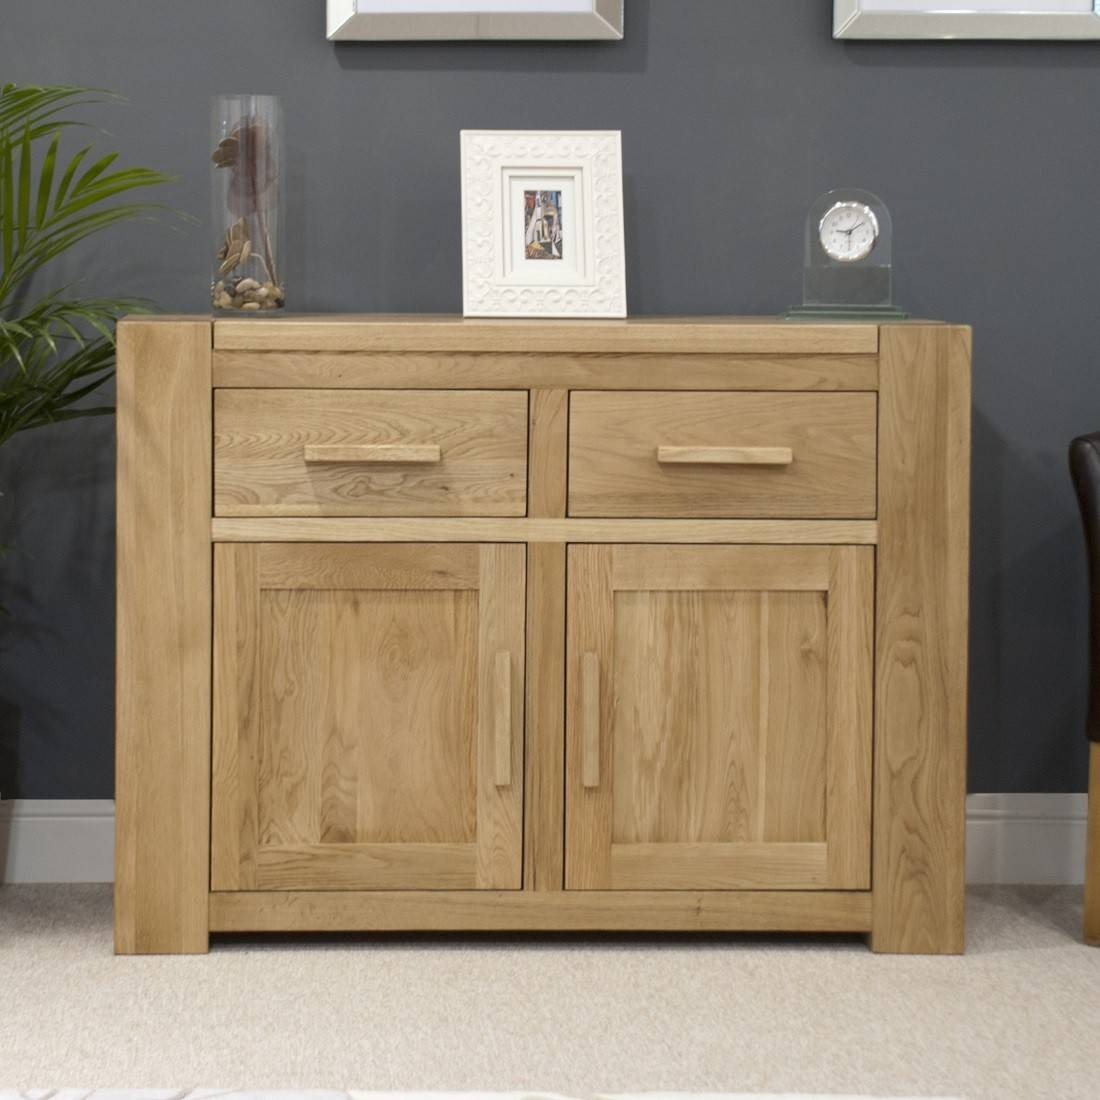 Trend Solid Oak Small 2 Door Sideboard | Oak Furniture Uk Within Most Up To Date Small Oak Sideboards (#15 of 15)